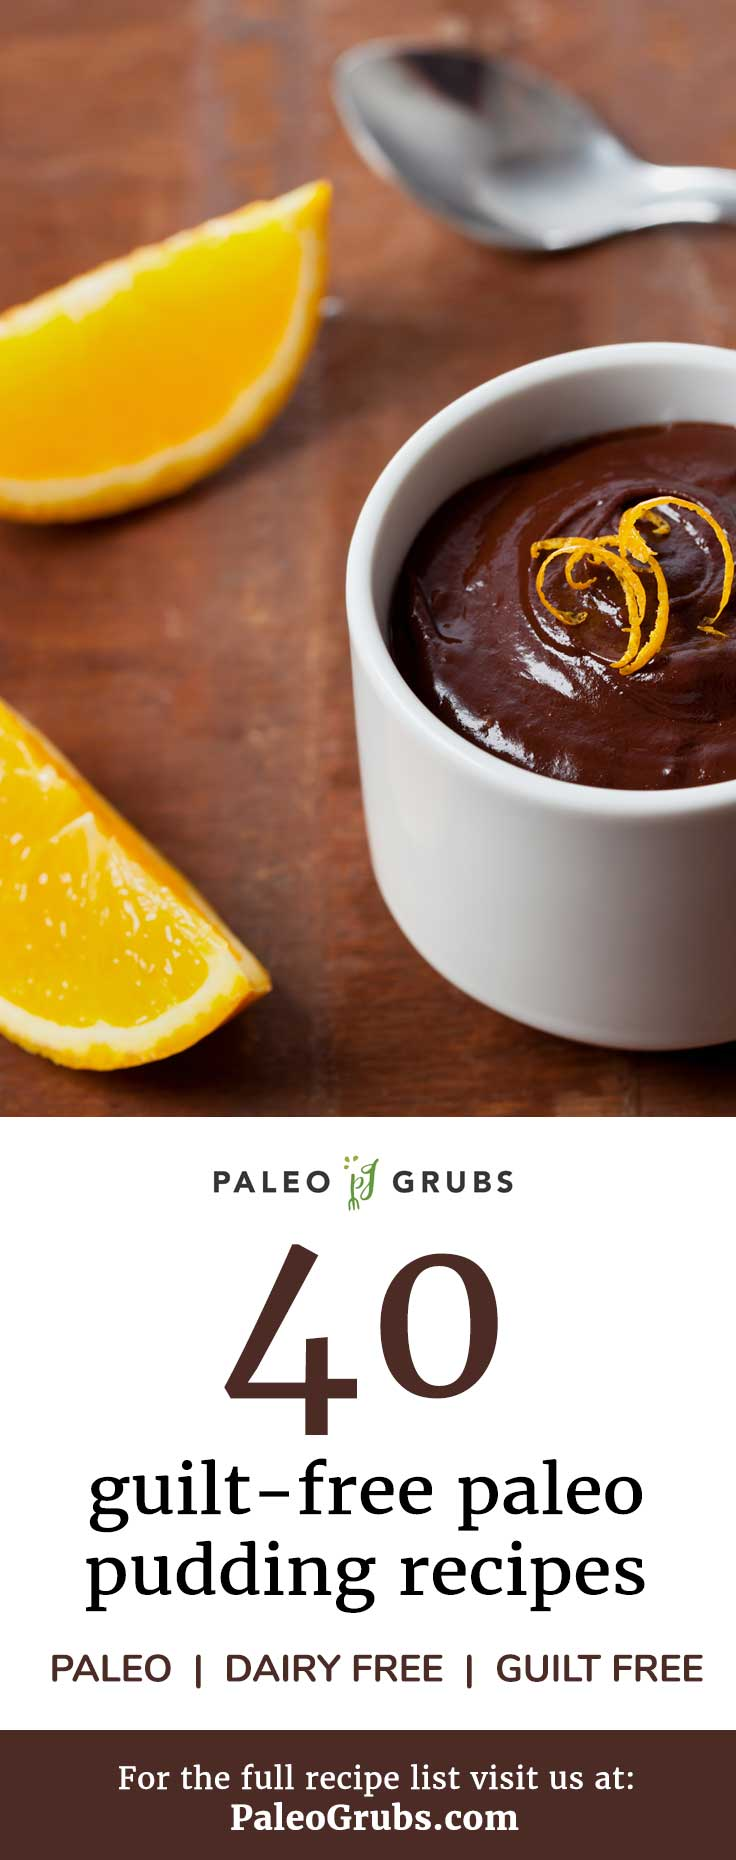 Chocolate, butterscotch, chia- I love pudding in all forms! Here are my favorite guilt-free recipes that are both indulgent, and you can feel good about eating them.